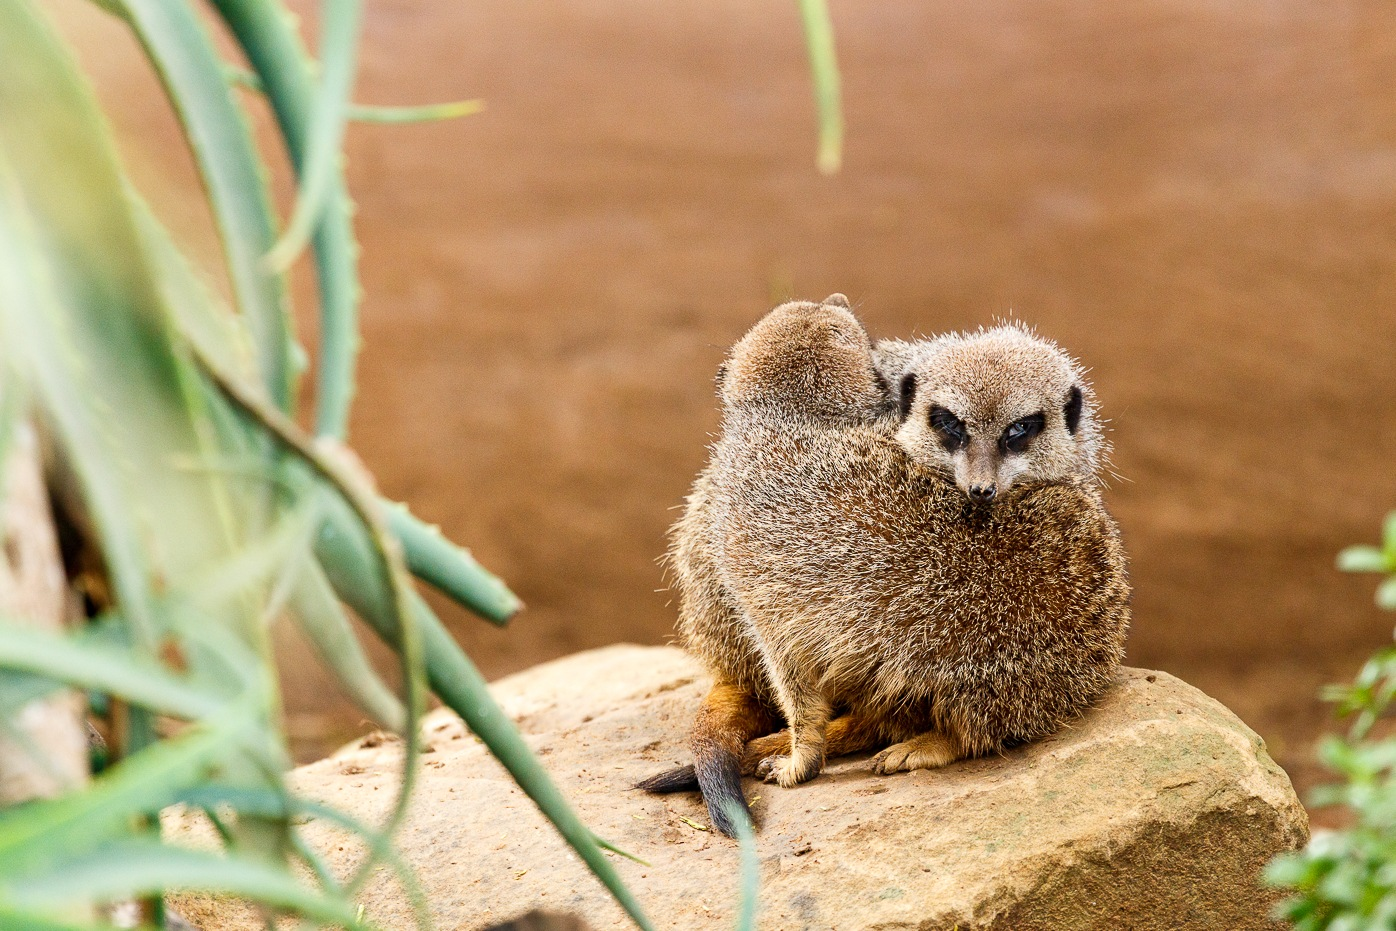 Meerkat looking sneaky over the other one by Charissa de Scande Lotter